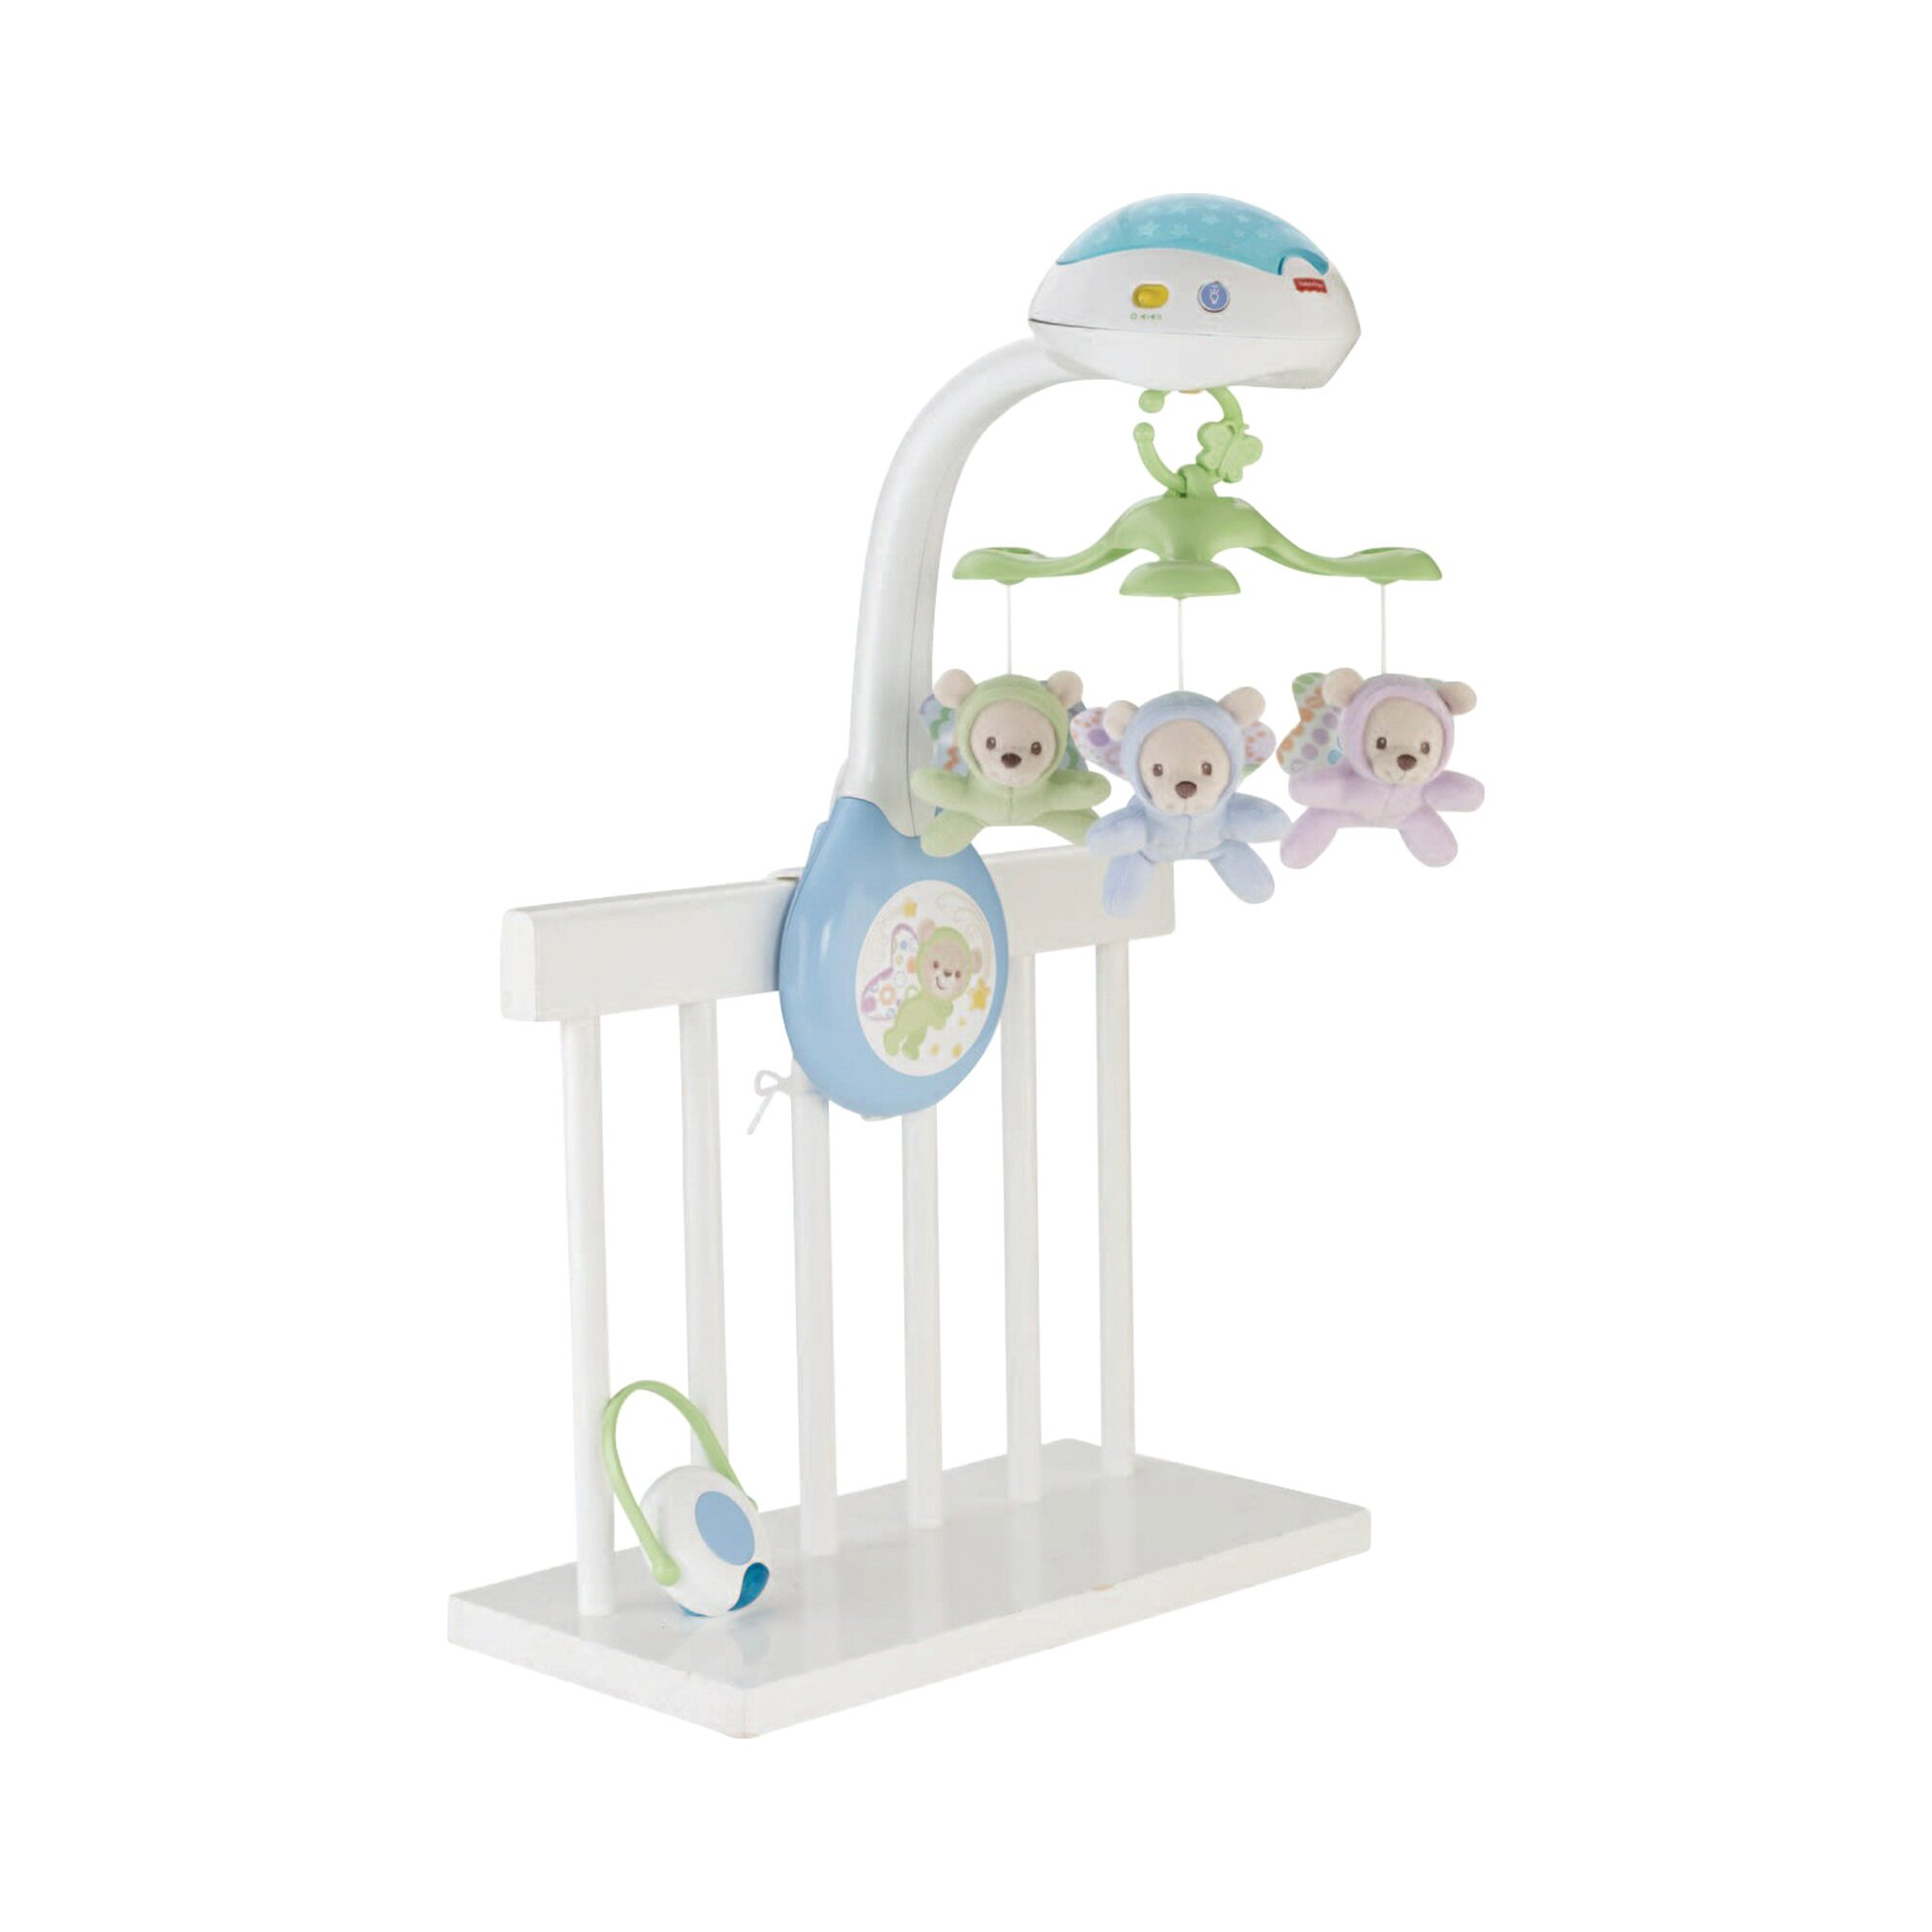 FISHER PRICE Traumbärchen Mobile 3-in-1